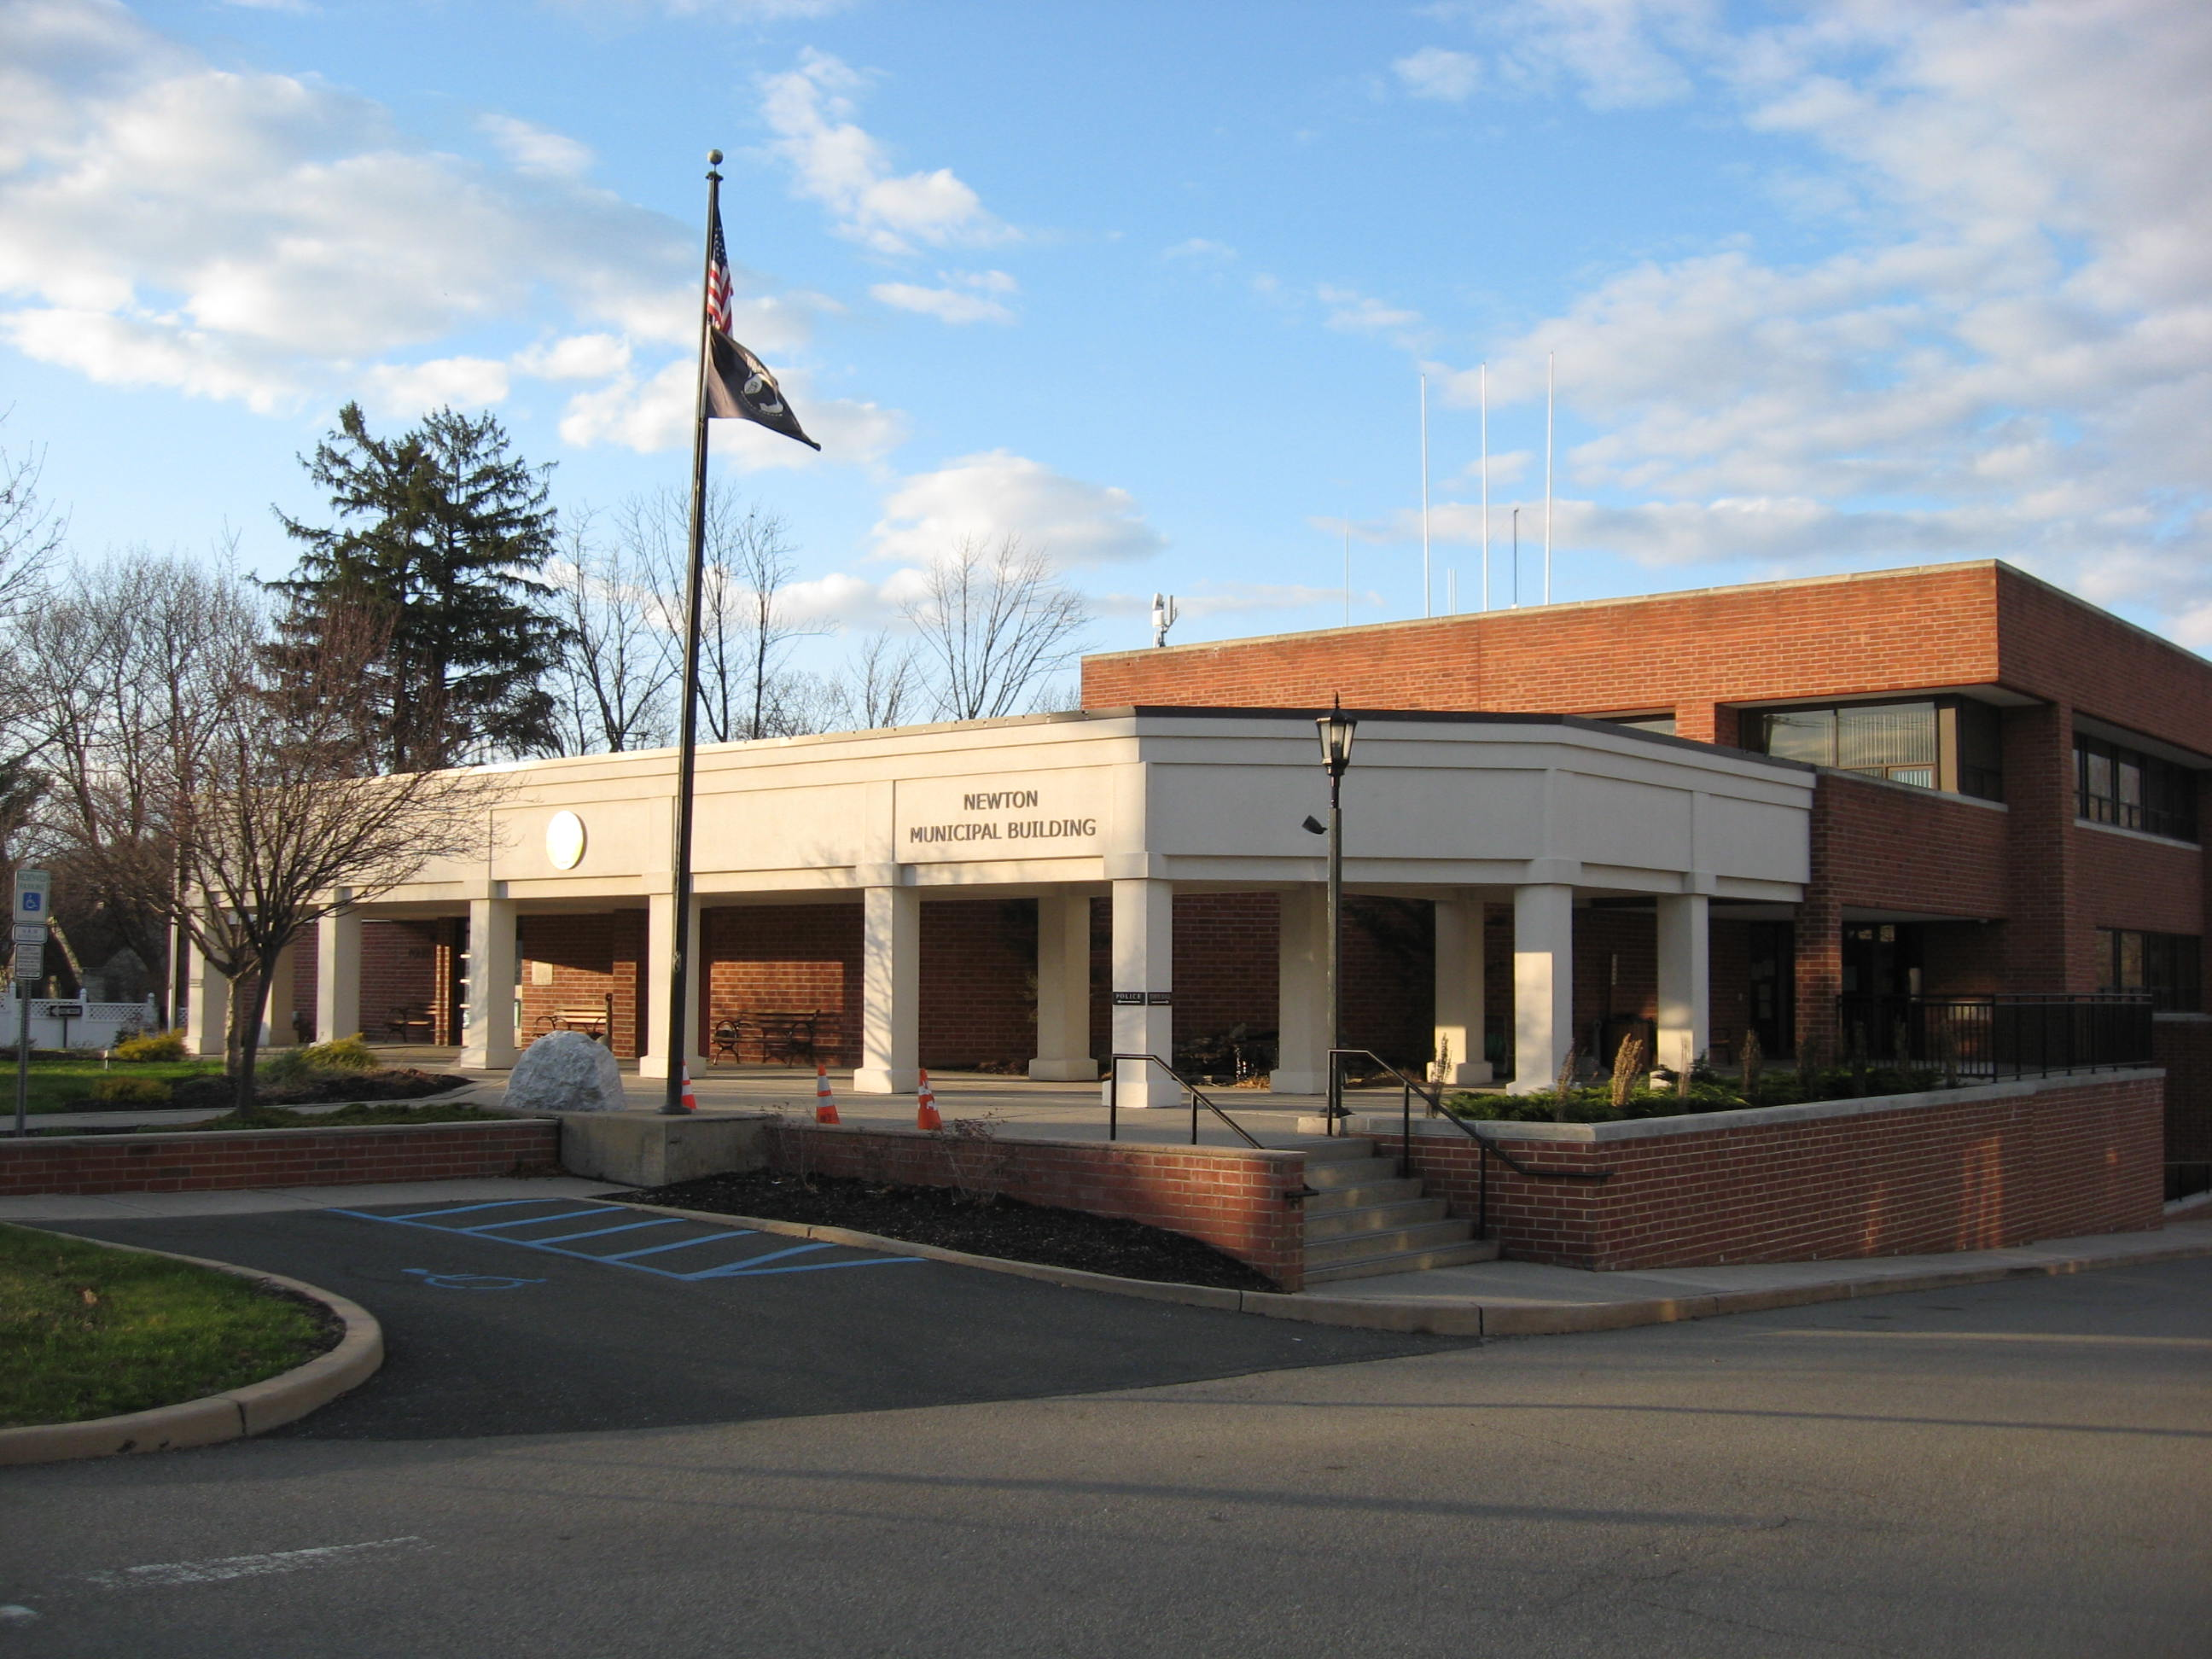 New jersey sussex county glasser - Newton S Municipal Building Located On Trinity Street Houses The Town S Offices Municipal Court And Police Department Of New Jersey S